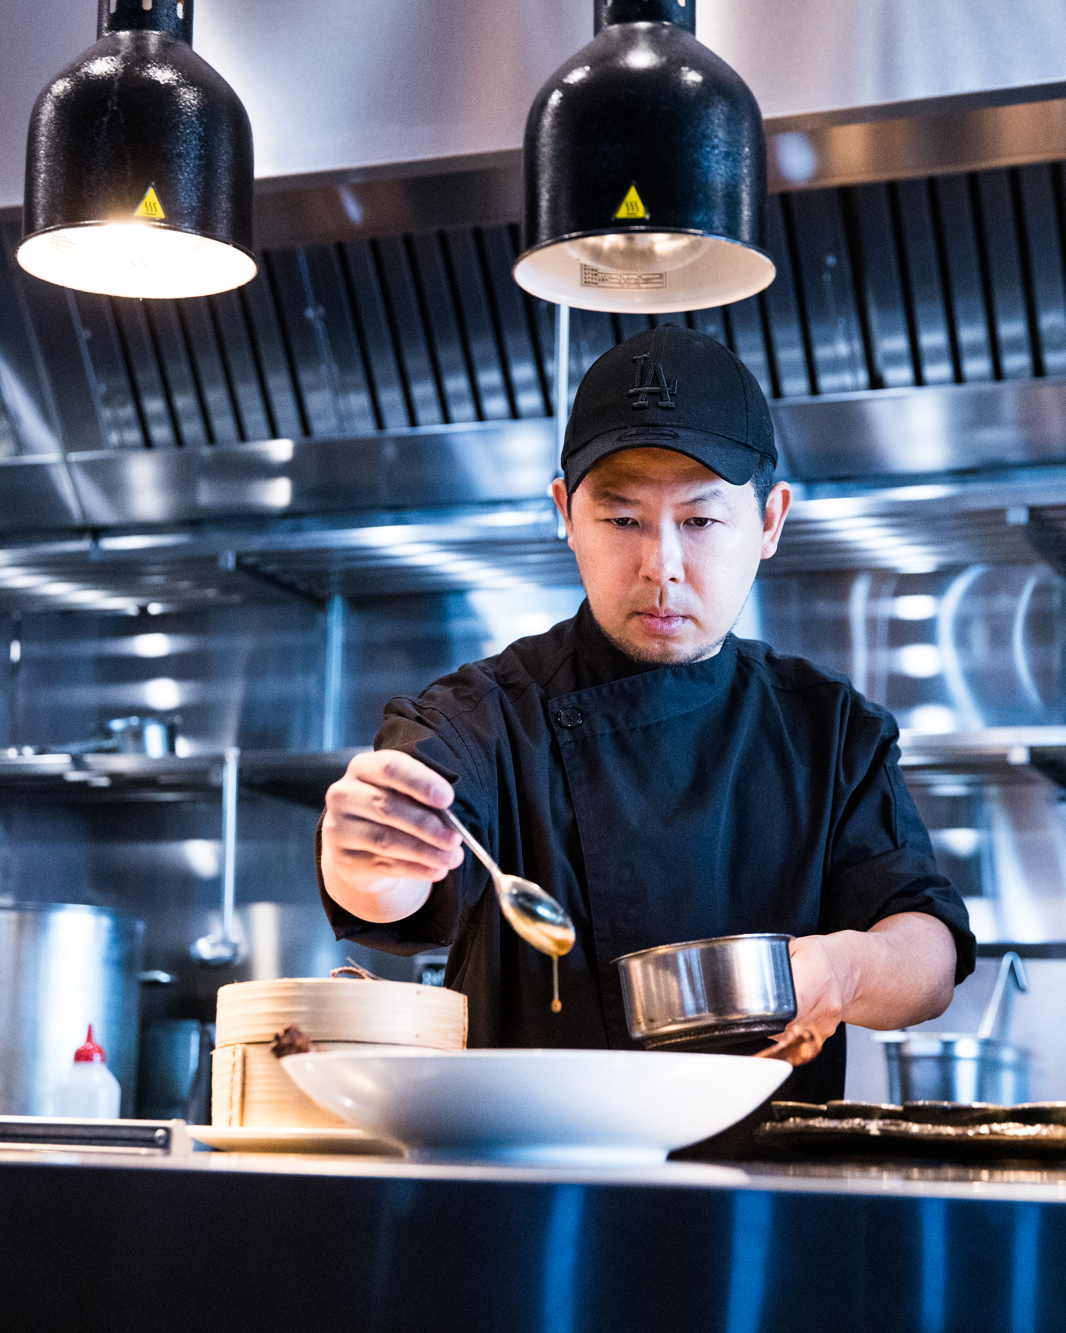 Chef Chase Kojima wearing a cap standing at the pass in his restaurant serving a dish.